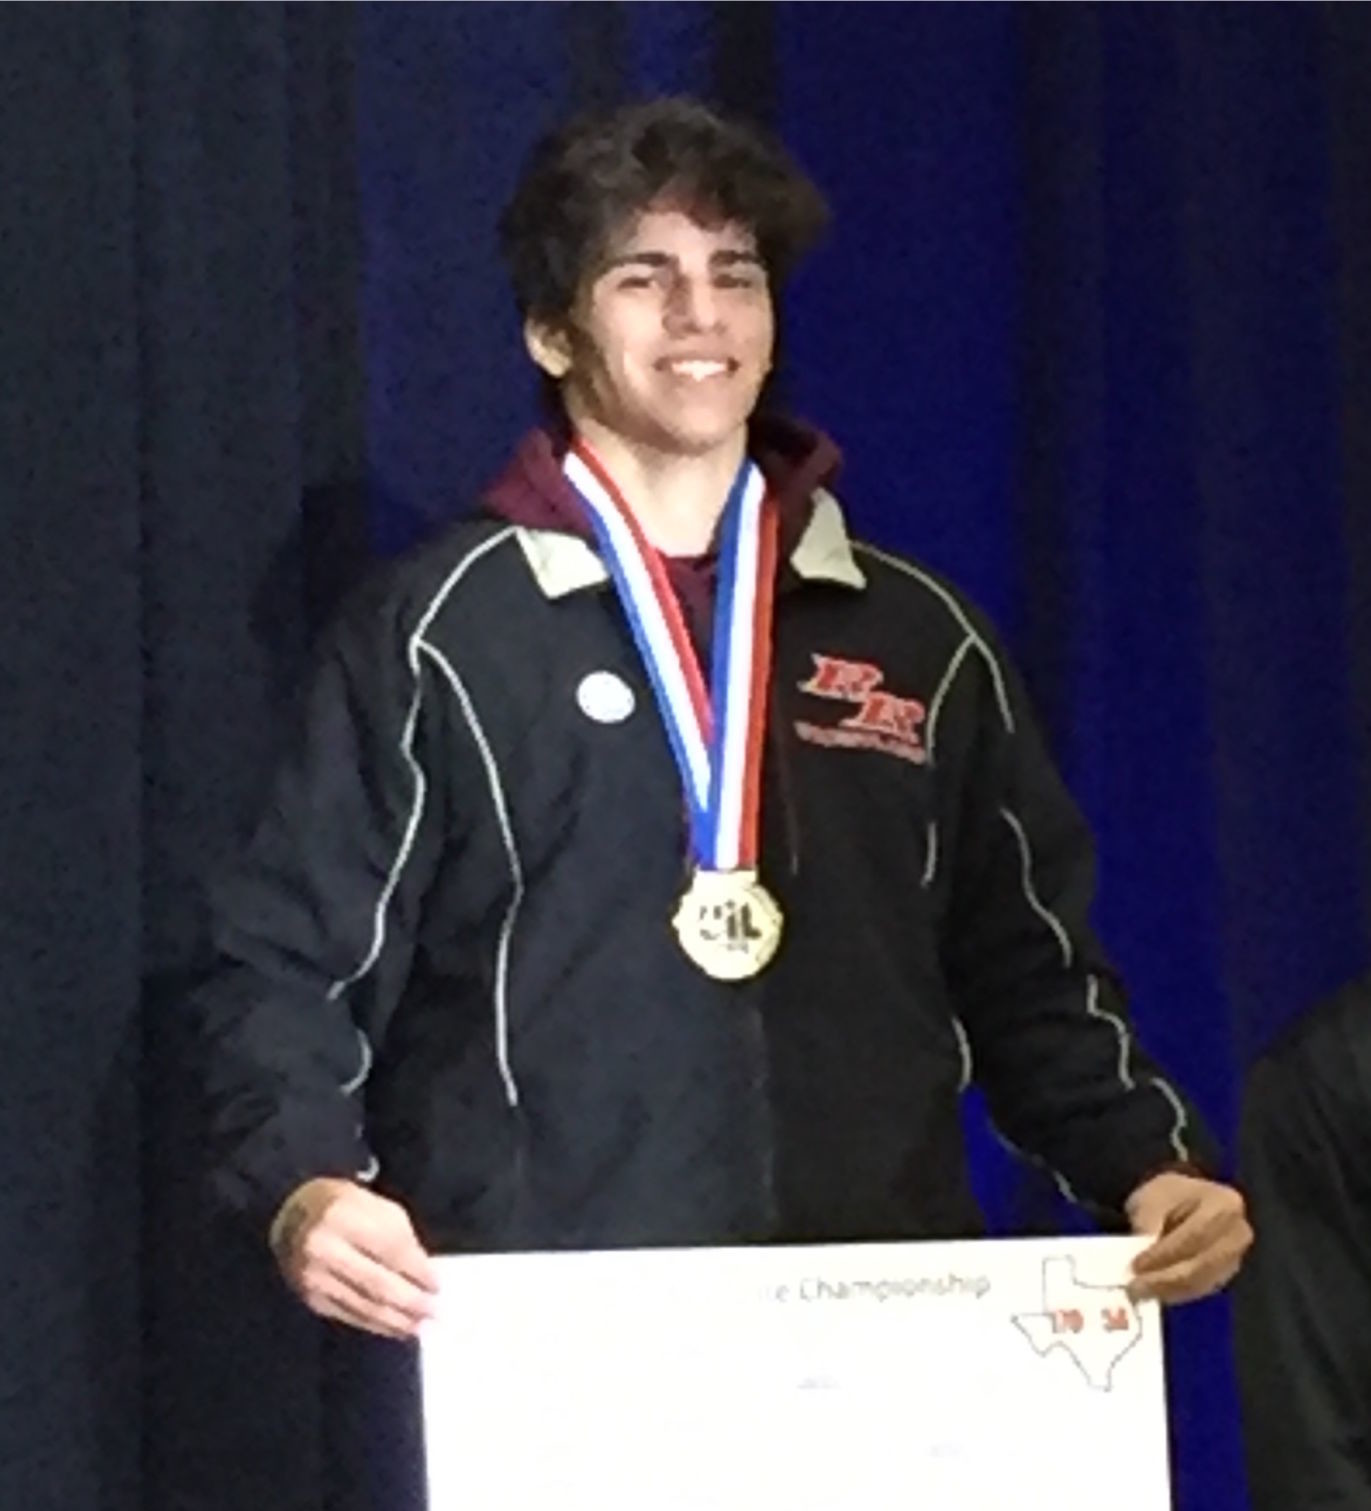 Dylan Rowling won the state title in the 170-pound weight class at the Berry Center in Houston on Saturday.